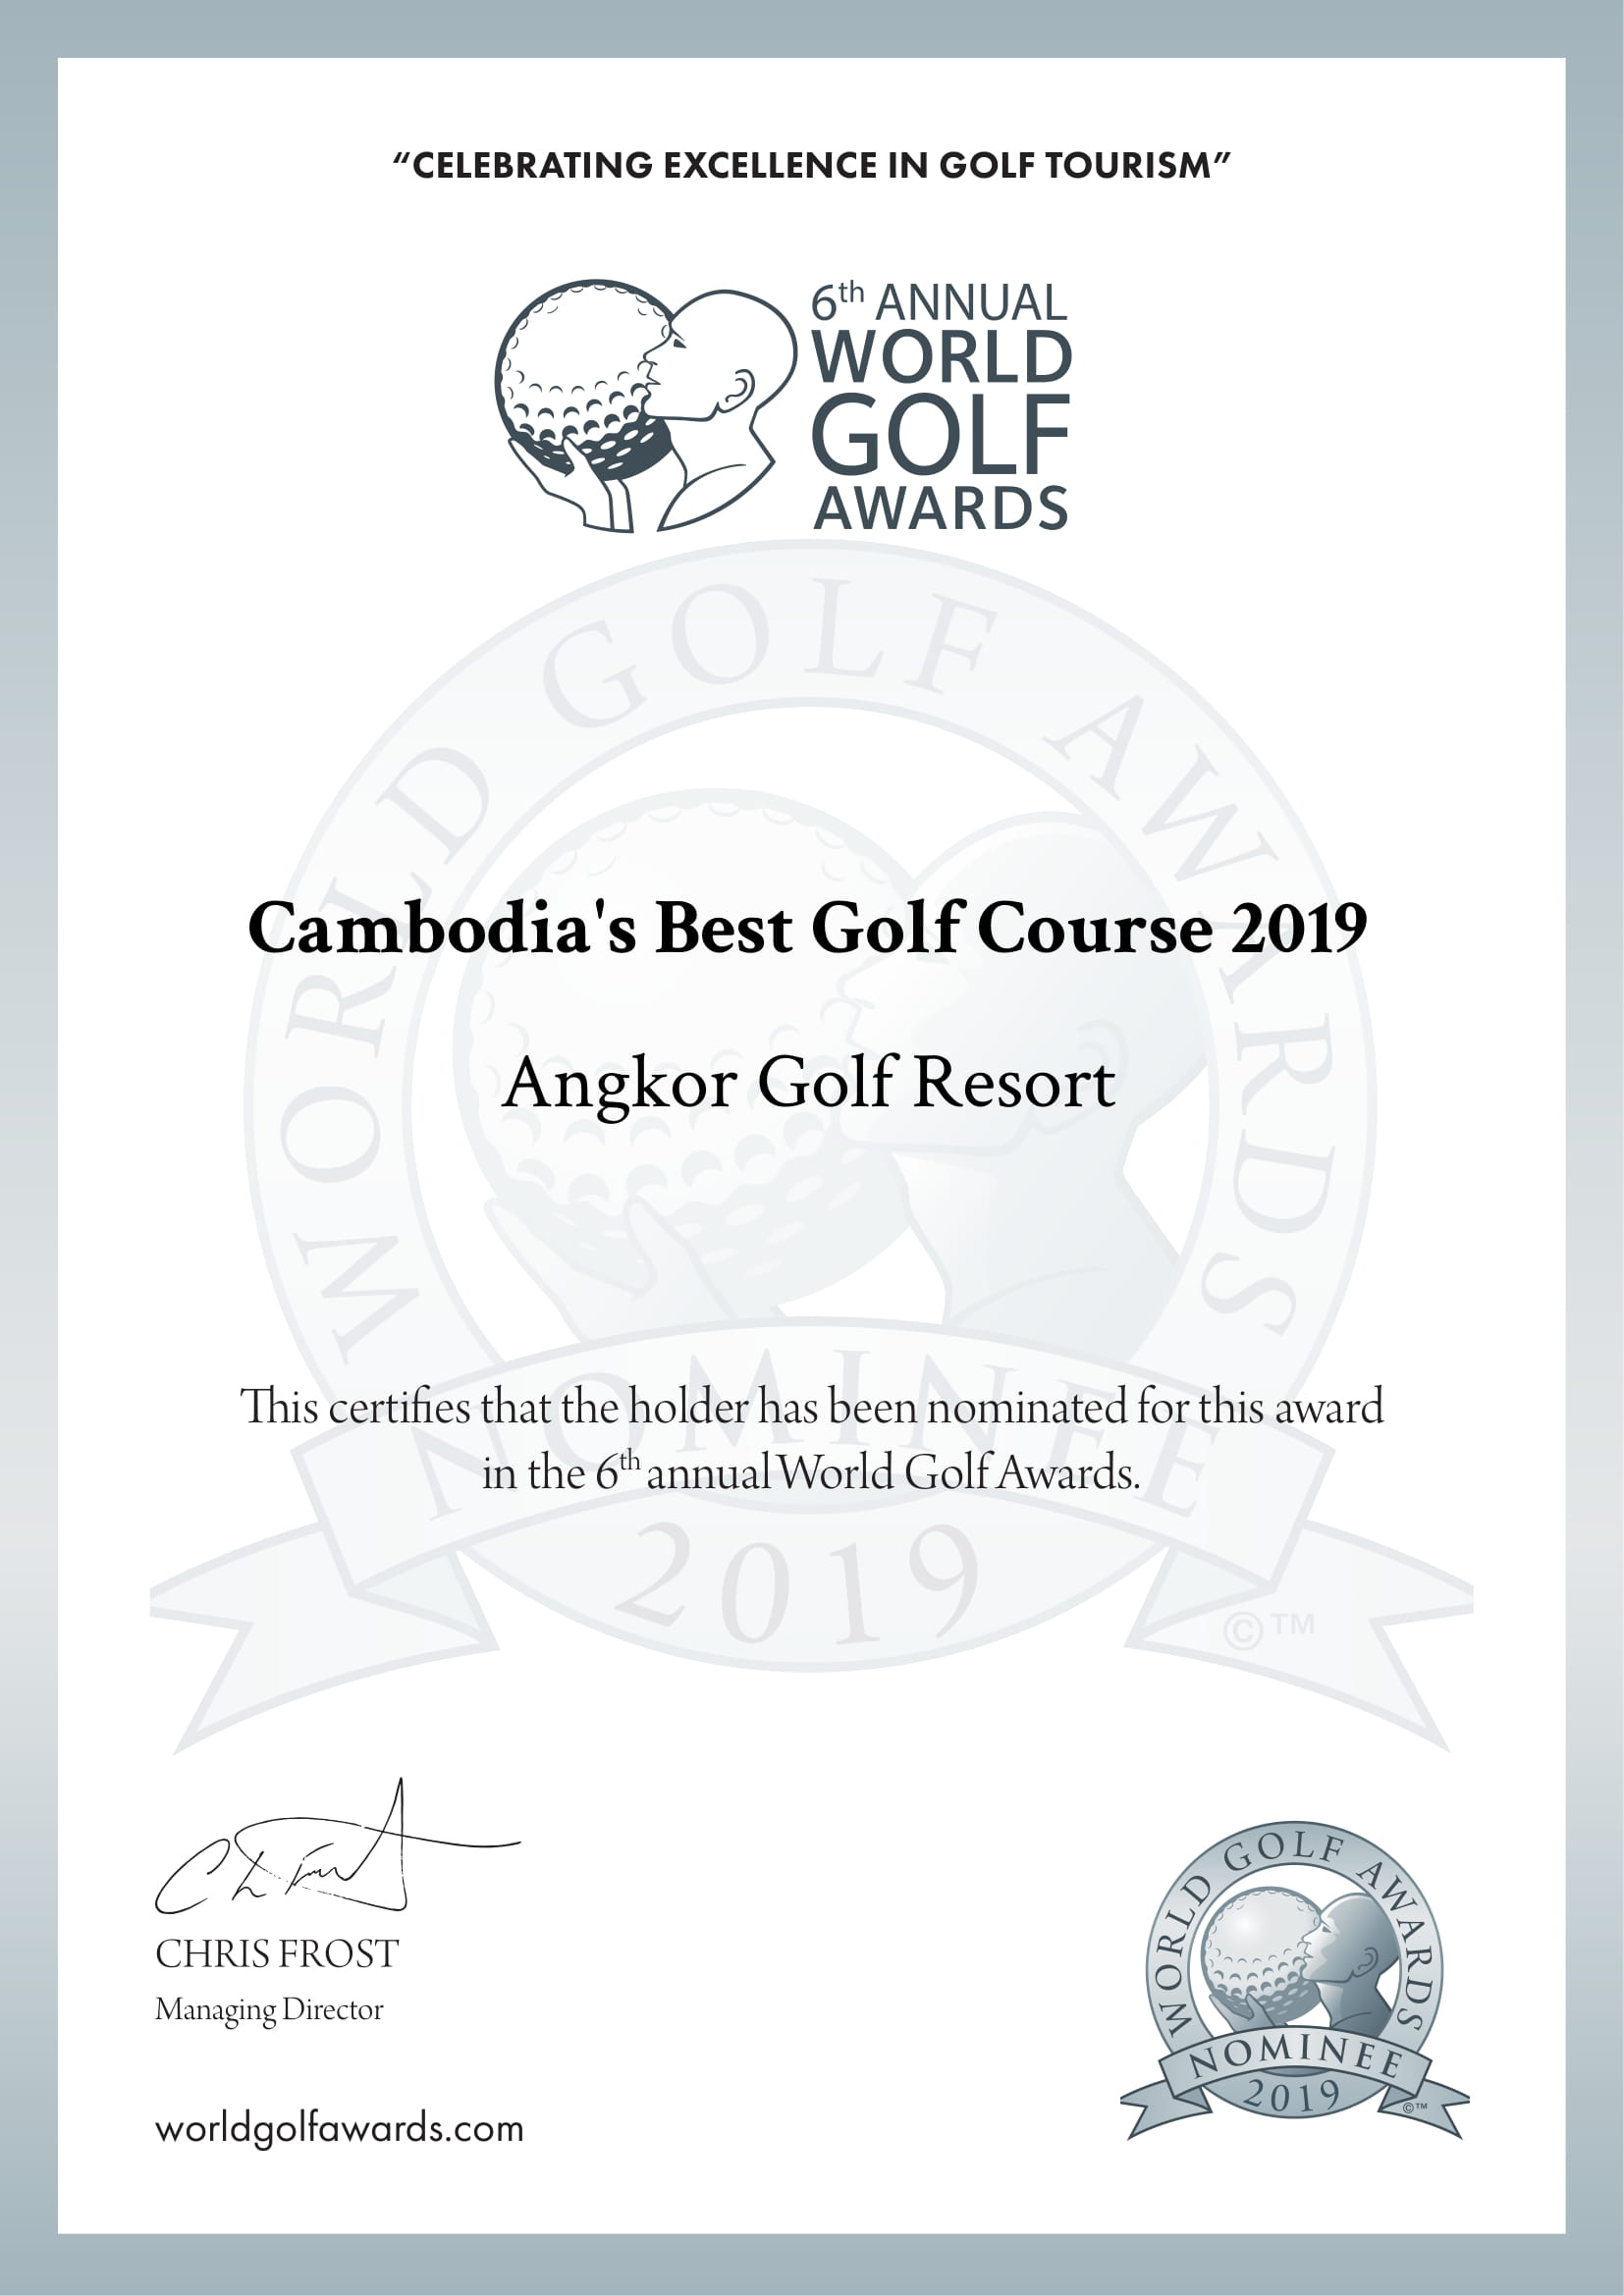 cambodias-best-golf-course-2019-nominee-certificate-colour.jpg